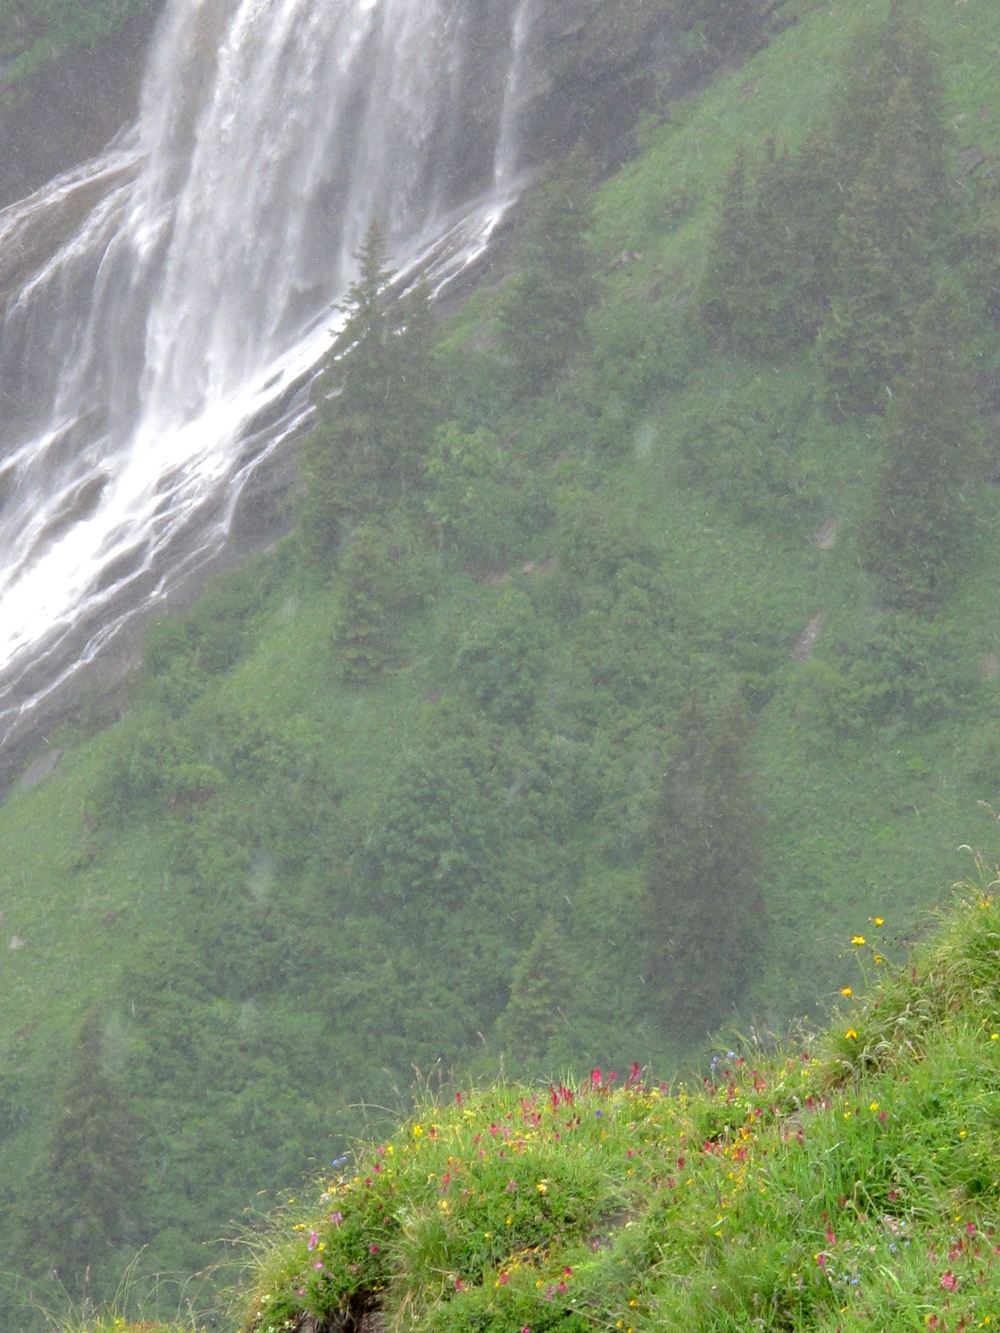 Waterfalls high up in the Swiss Alps near Lauterbrunnen